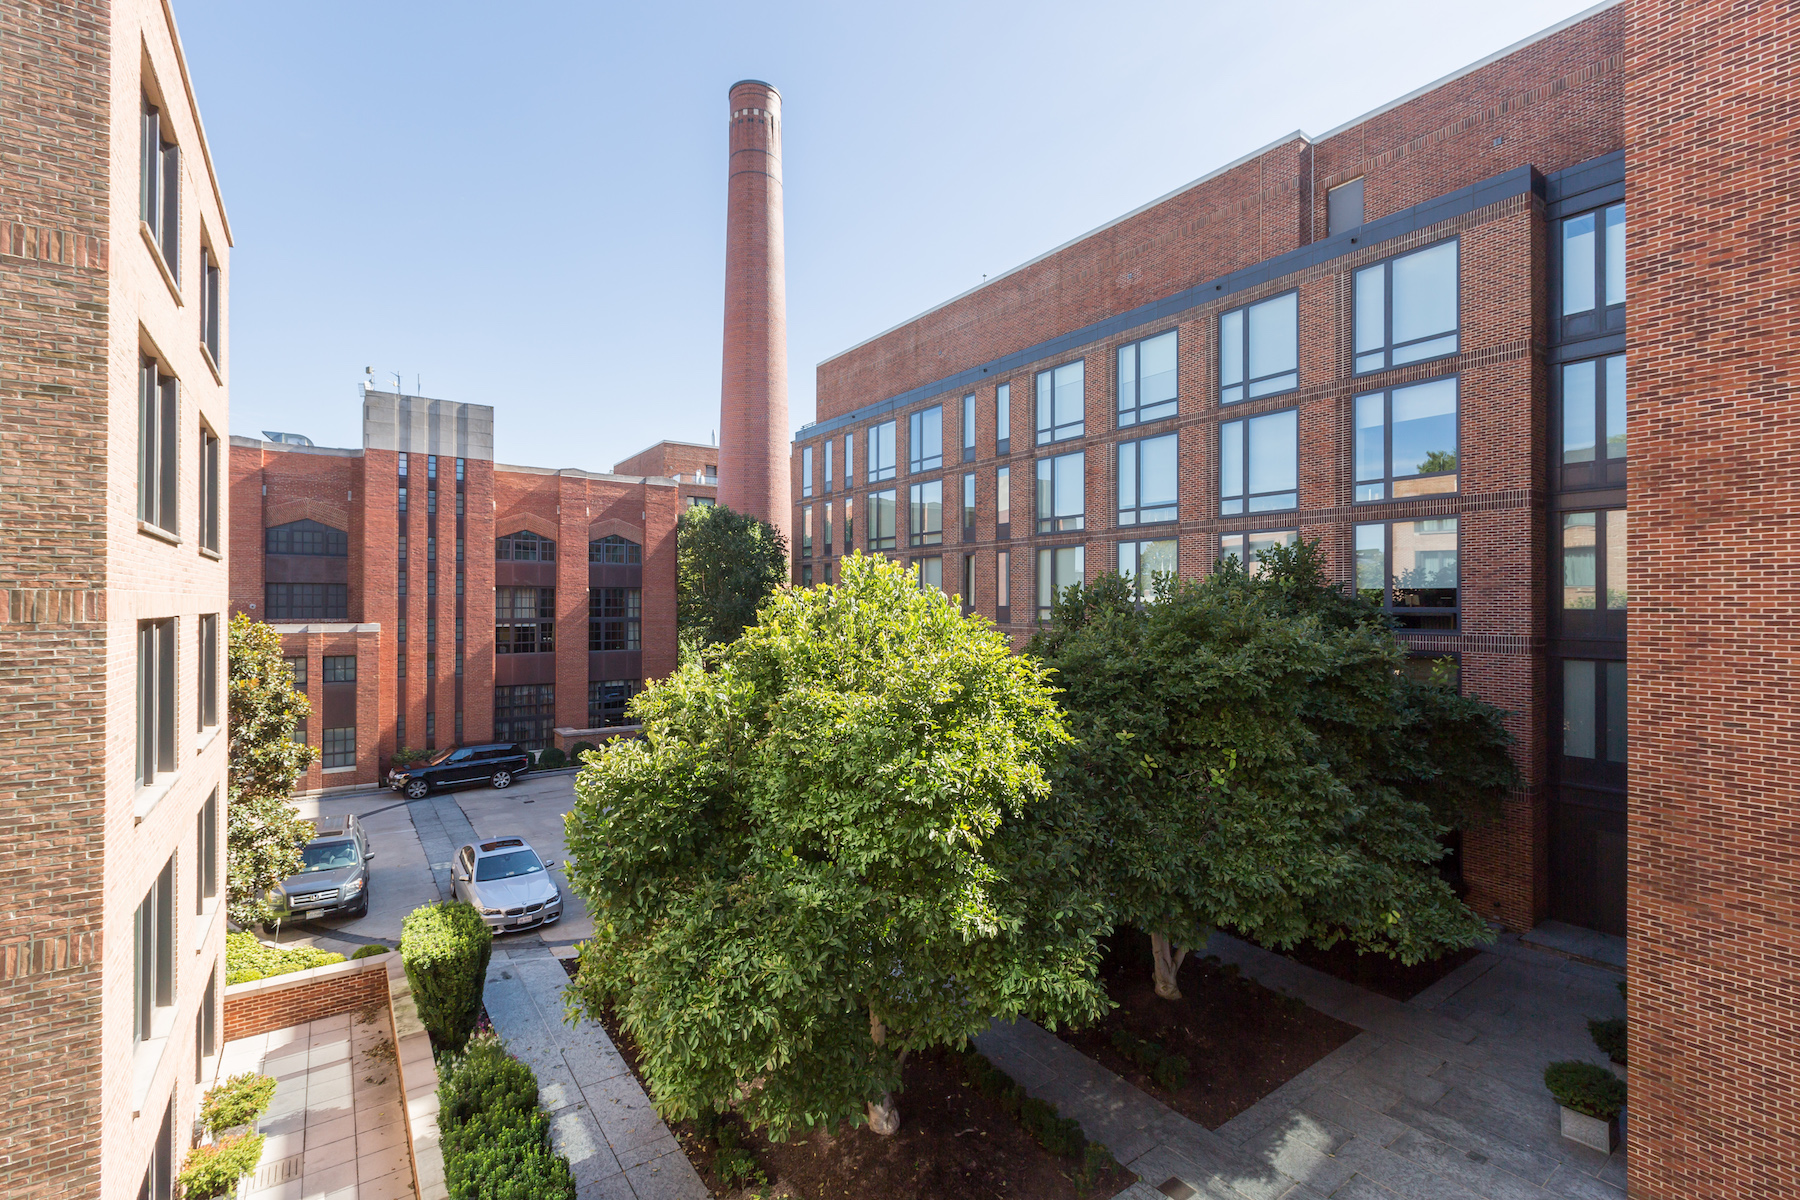 Condominium for Sale at Georgetown 3150 South Street Nw 1C Georgetown, Washington, District Of Columbia, 20007 United States